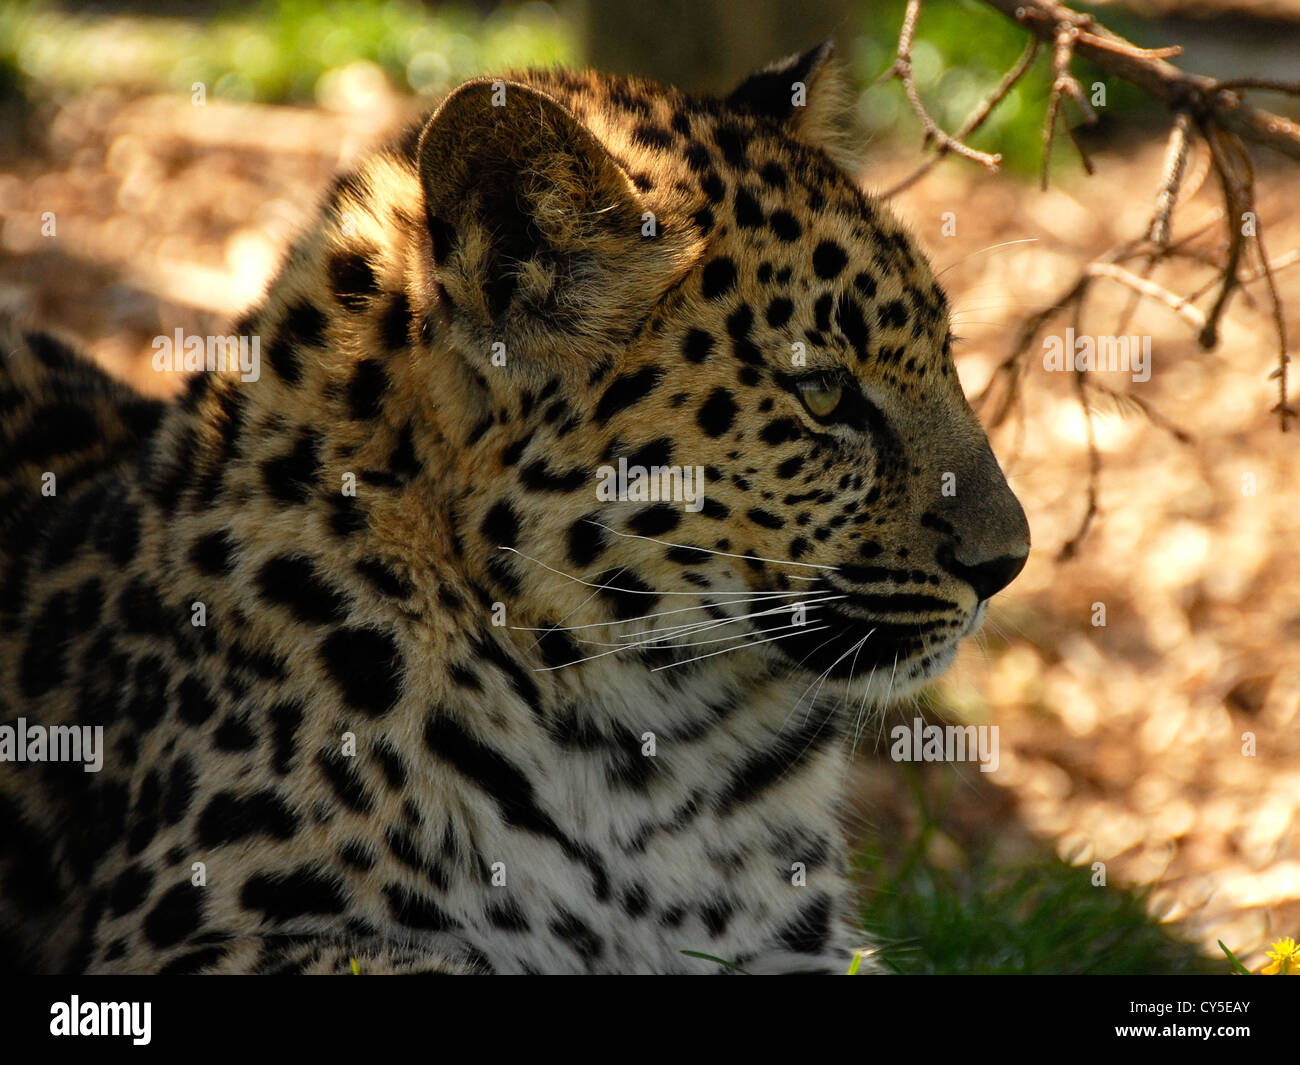 Amur leopard Close up looking to the right - Stock Image